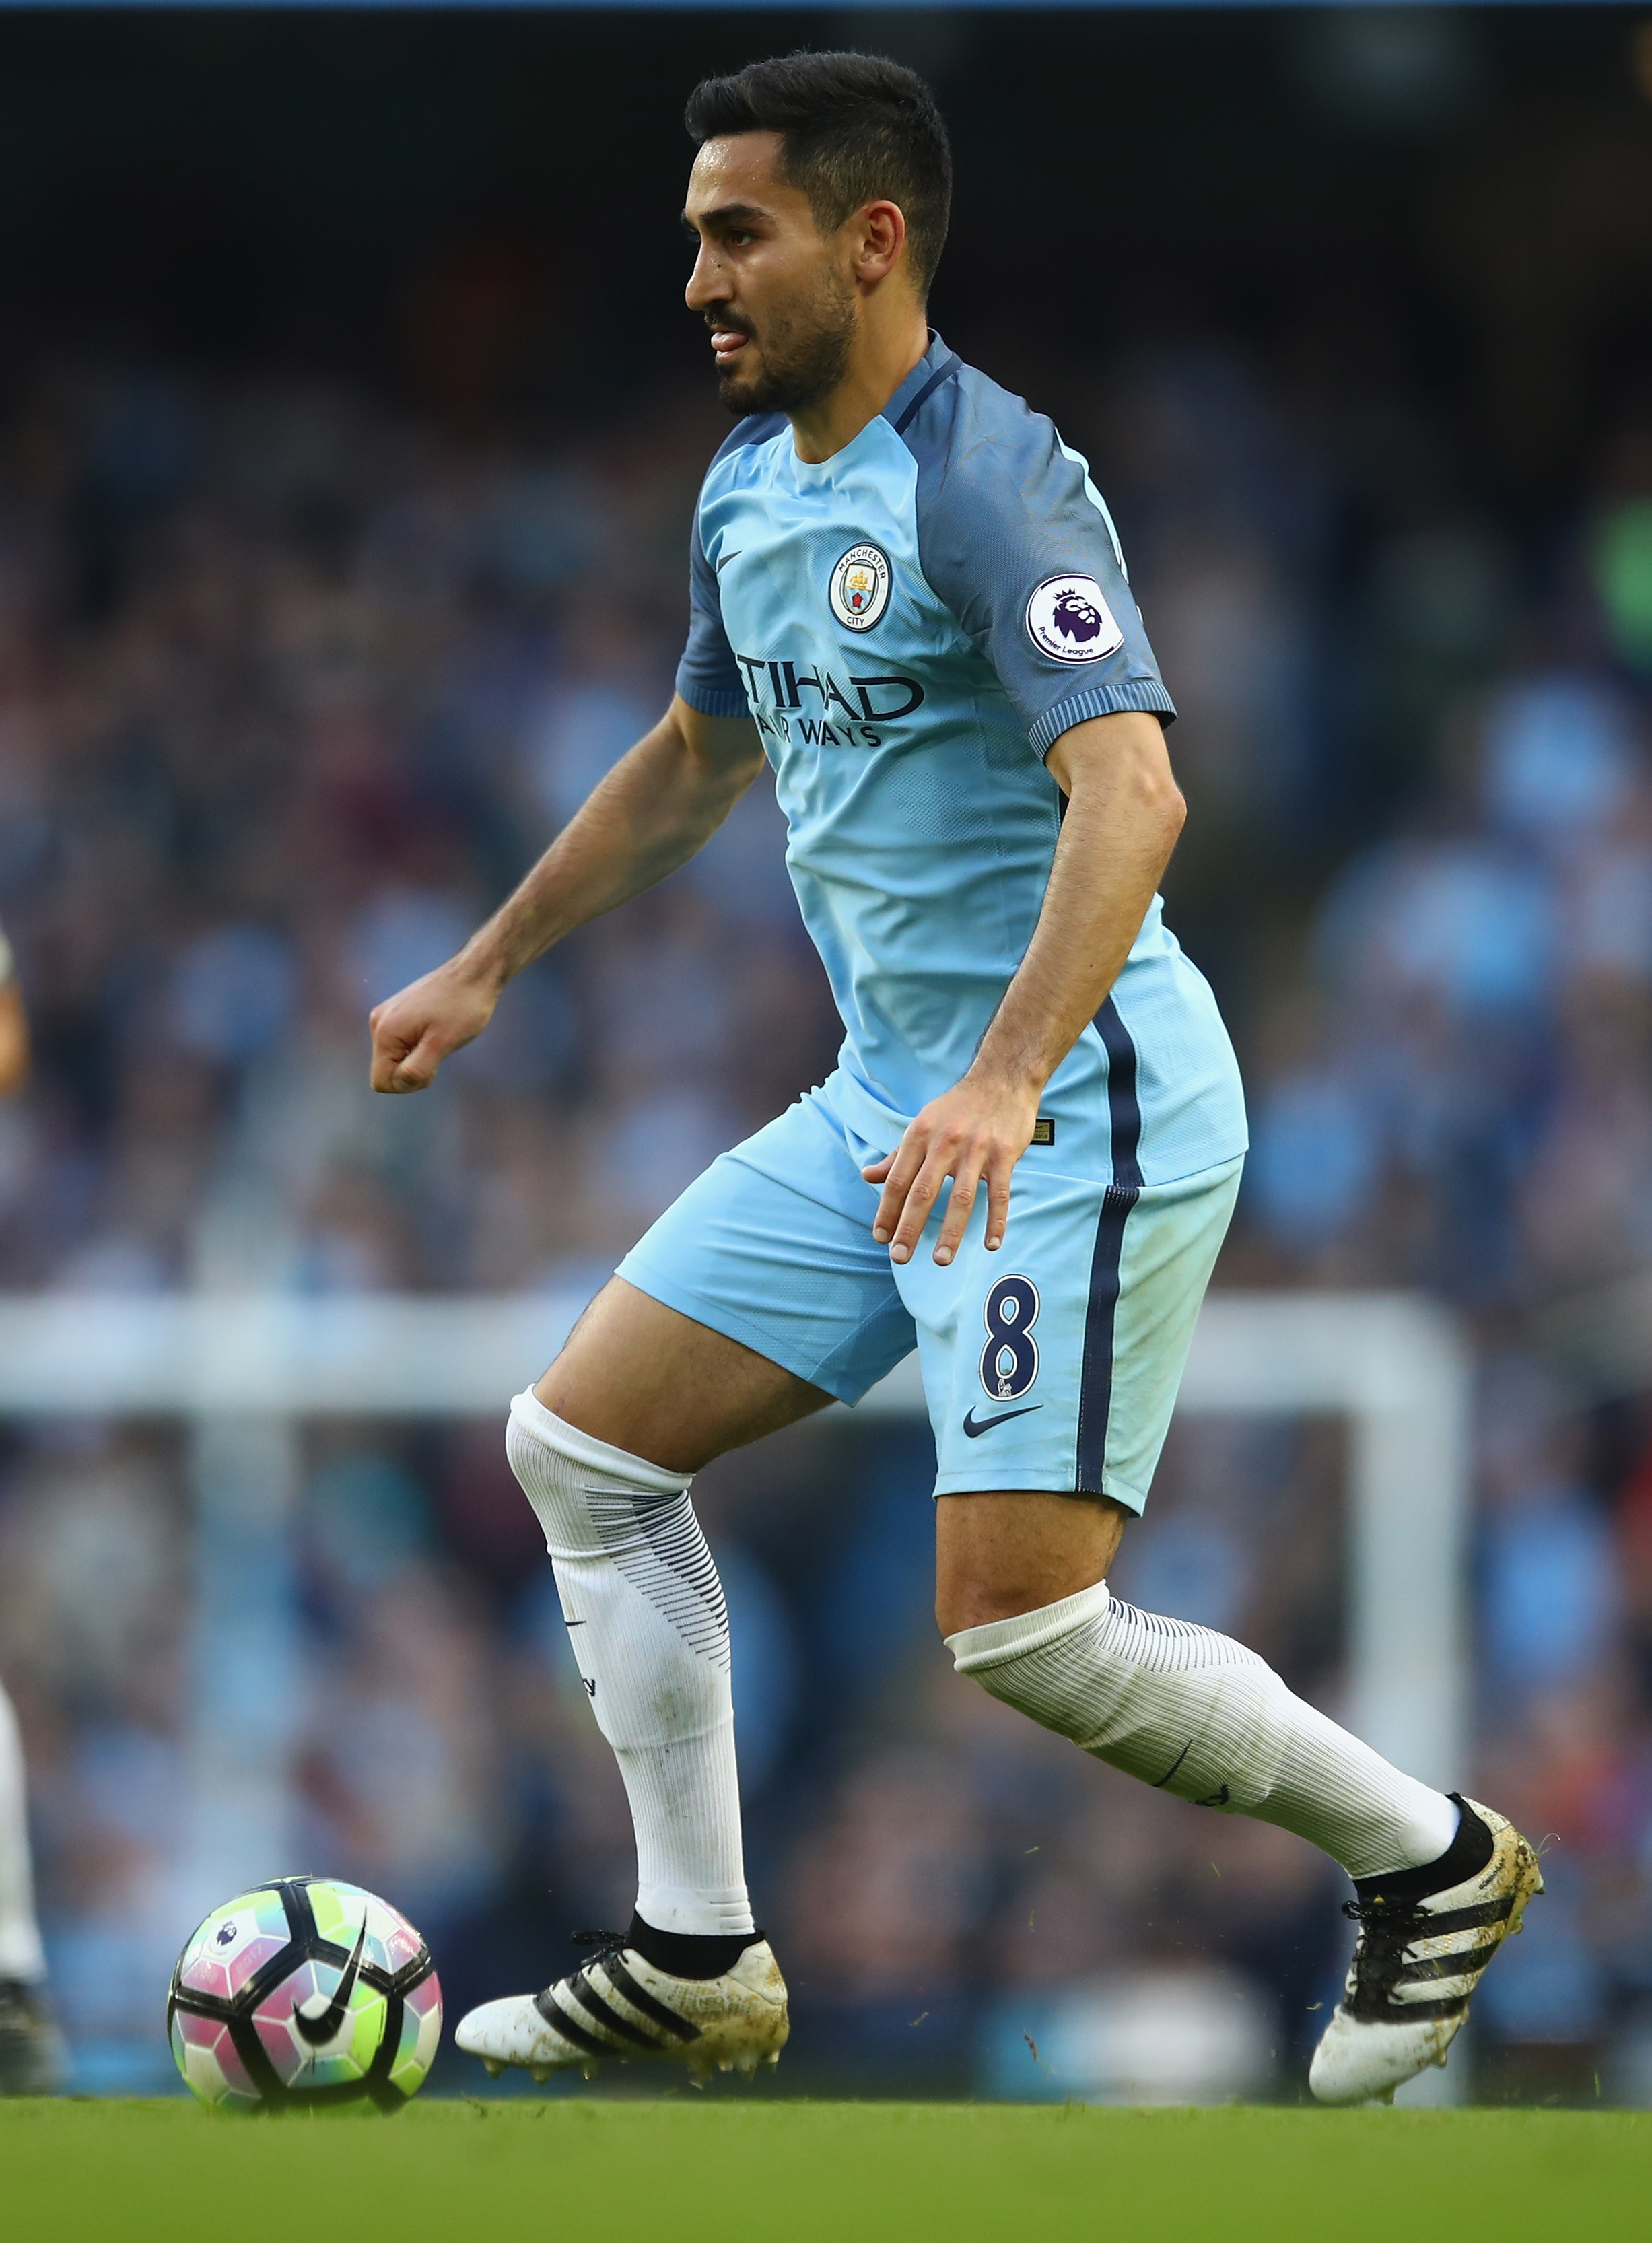 Manchester City profiles If fit Ilkay Gundogan a midfield